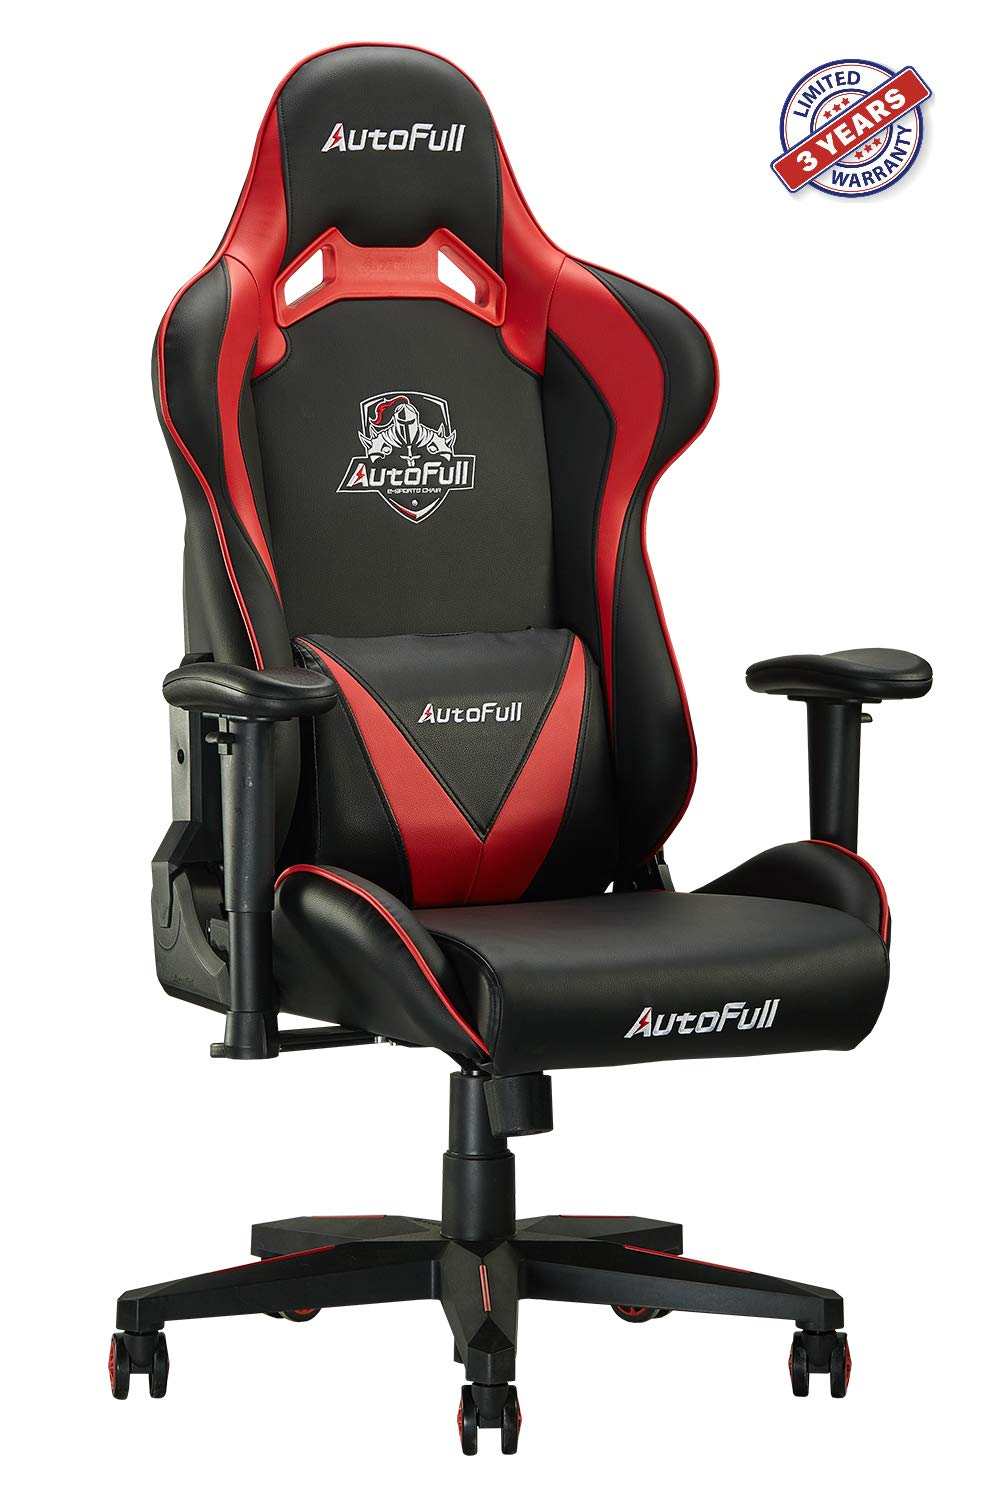 AutoFull Computer Gaming Chair - Adjustable Reclining High-Back PU Leather Swivel Game Chair with Headrest and Lumbar Support (PU, B-Red)